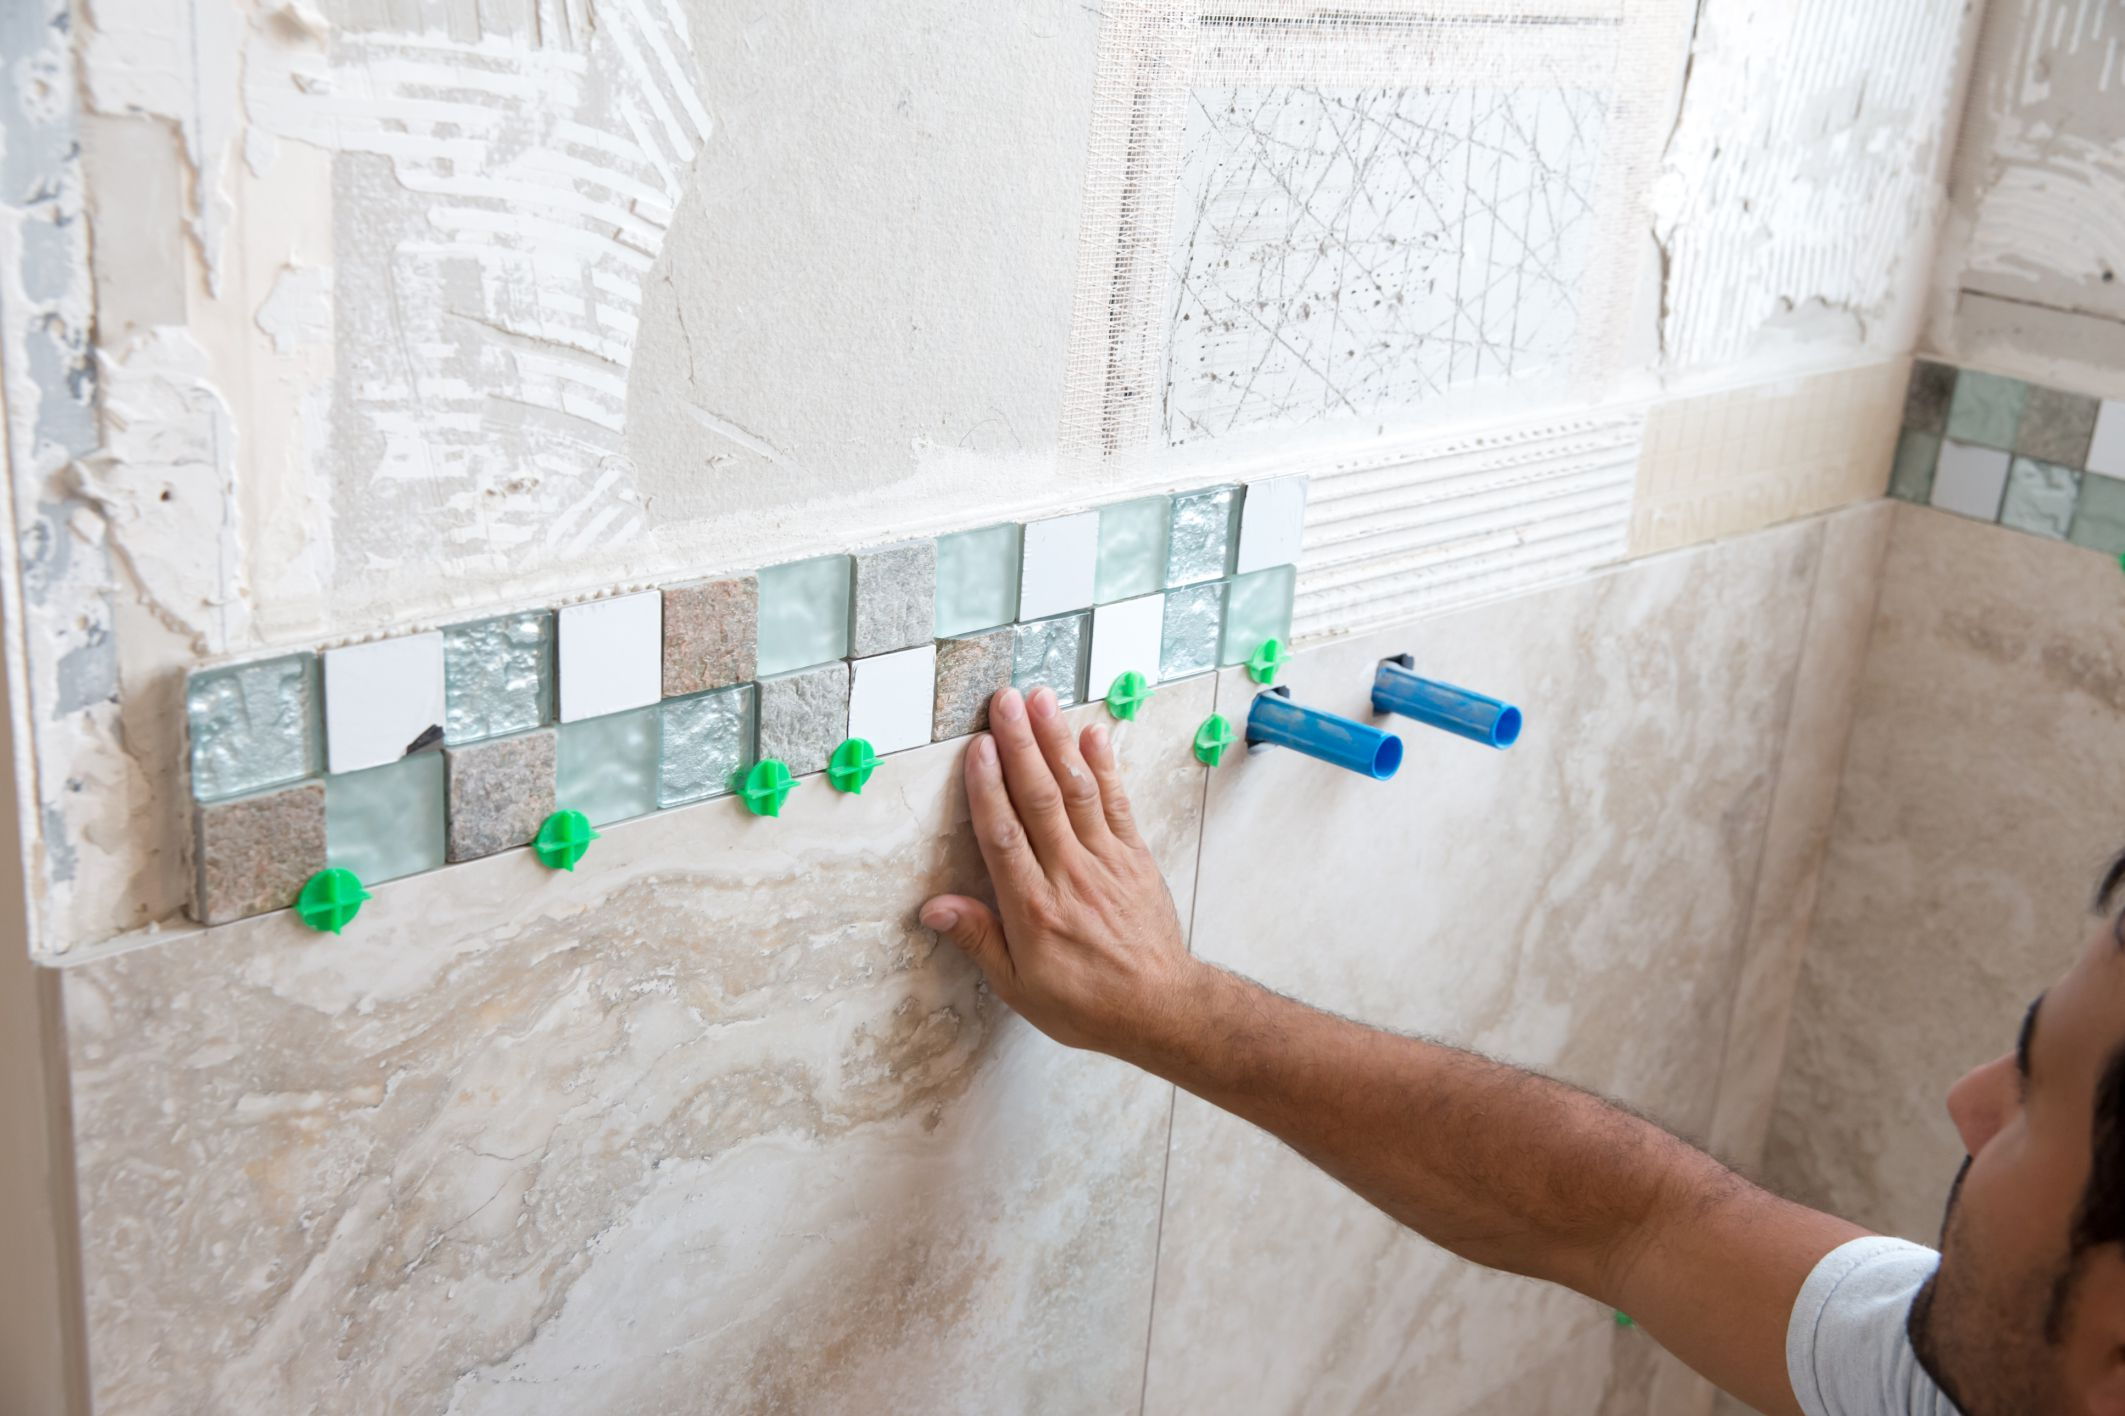 Tile mortar guide thinset mastic and epoxy tiling a shower get these things right dailygadgetfo Choice Image